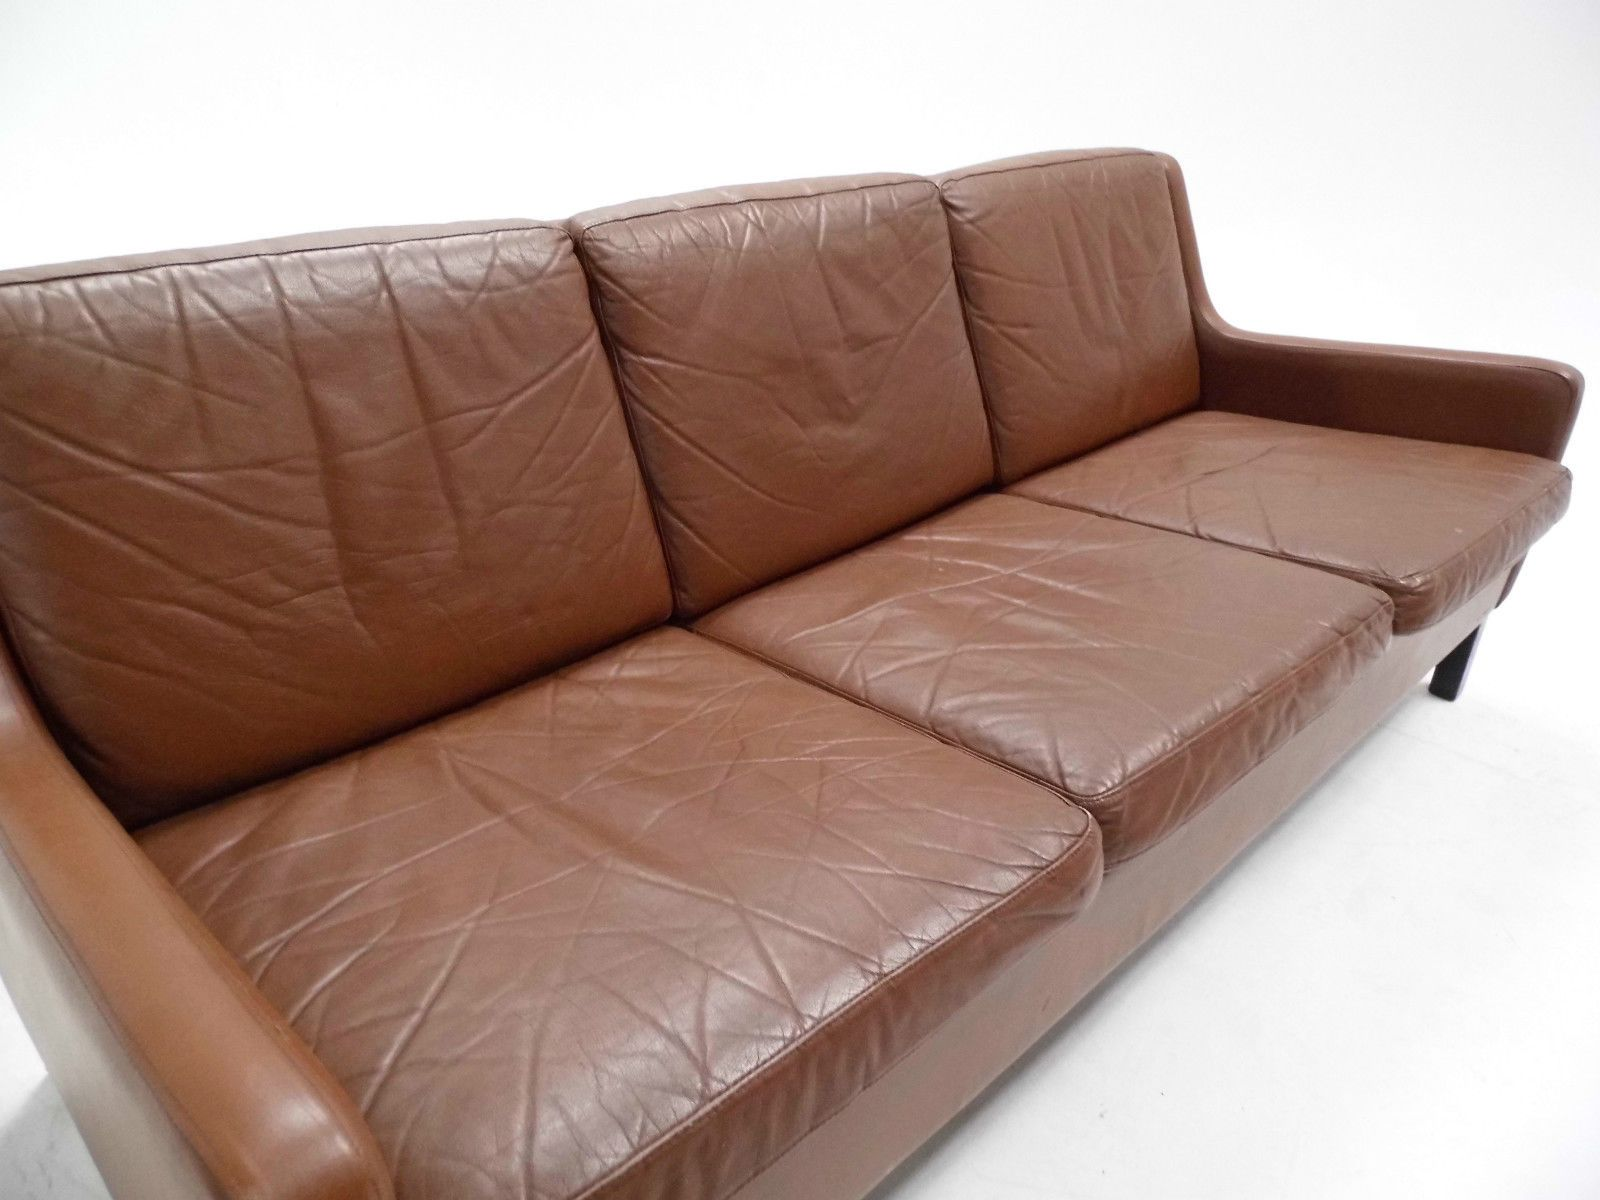 Danish tan leather three seater sofa 1960s for sale at pamono for Tan couches for sale